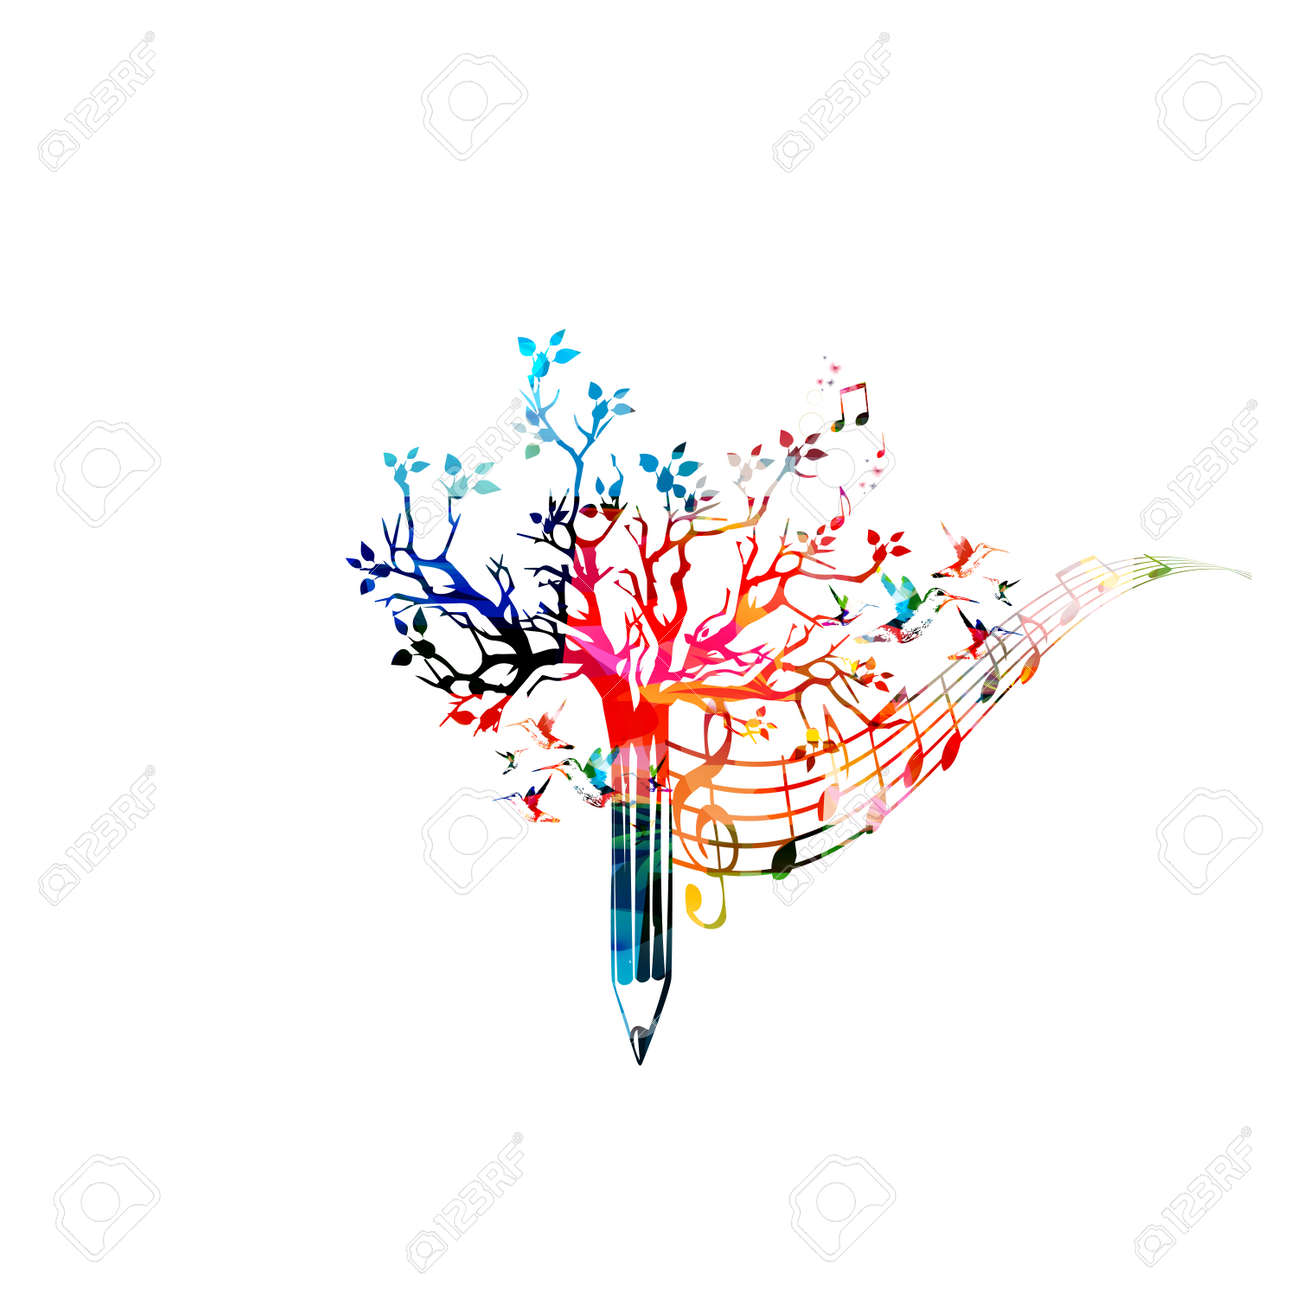 Colorful pencil tree vector illustration with music notes. Design for creative writing, storytelling, blogging, education, book cover, article and website content writing, copywriting, composing music - 64461944